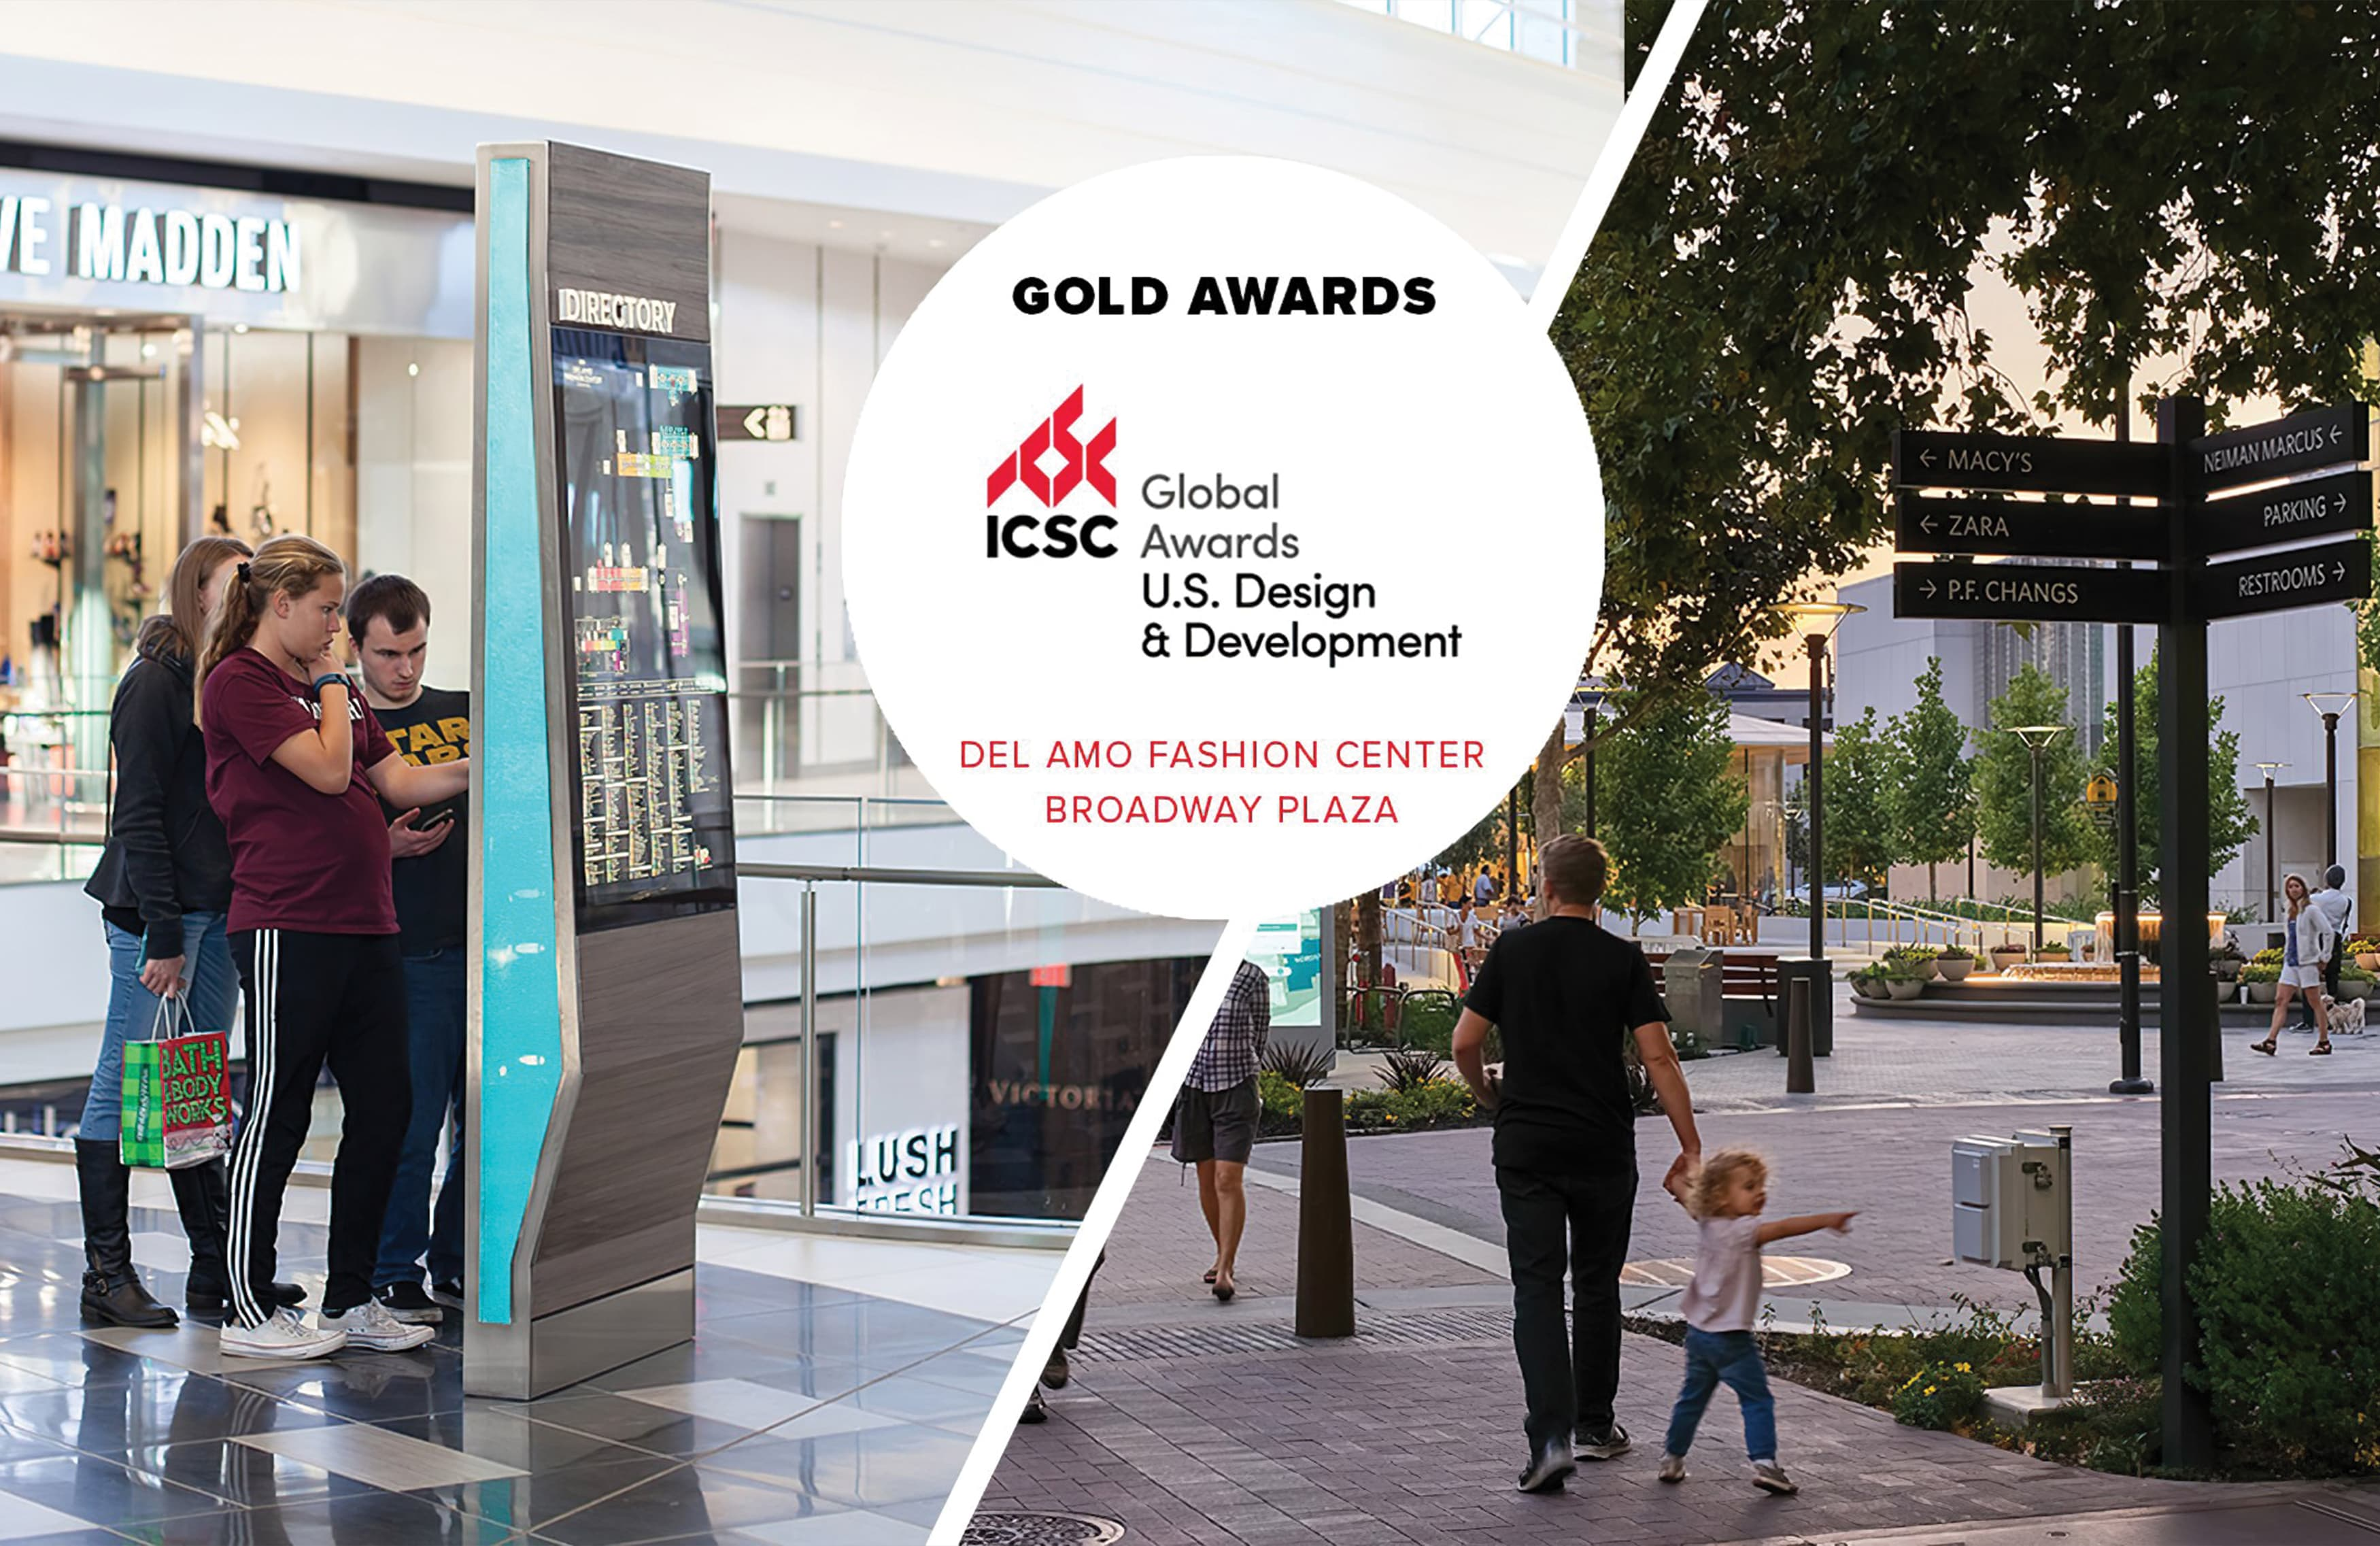 Announcing two ICSC award-winning projects, Del Amo Fashion Center and Broadway Plaza.